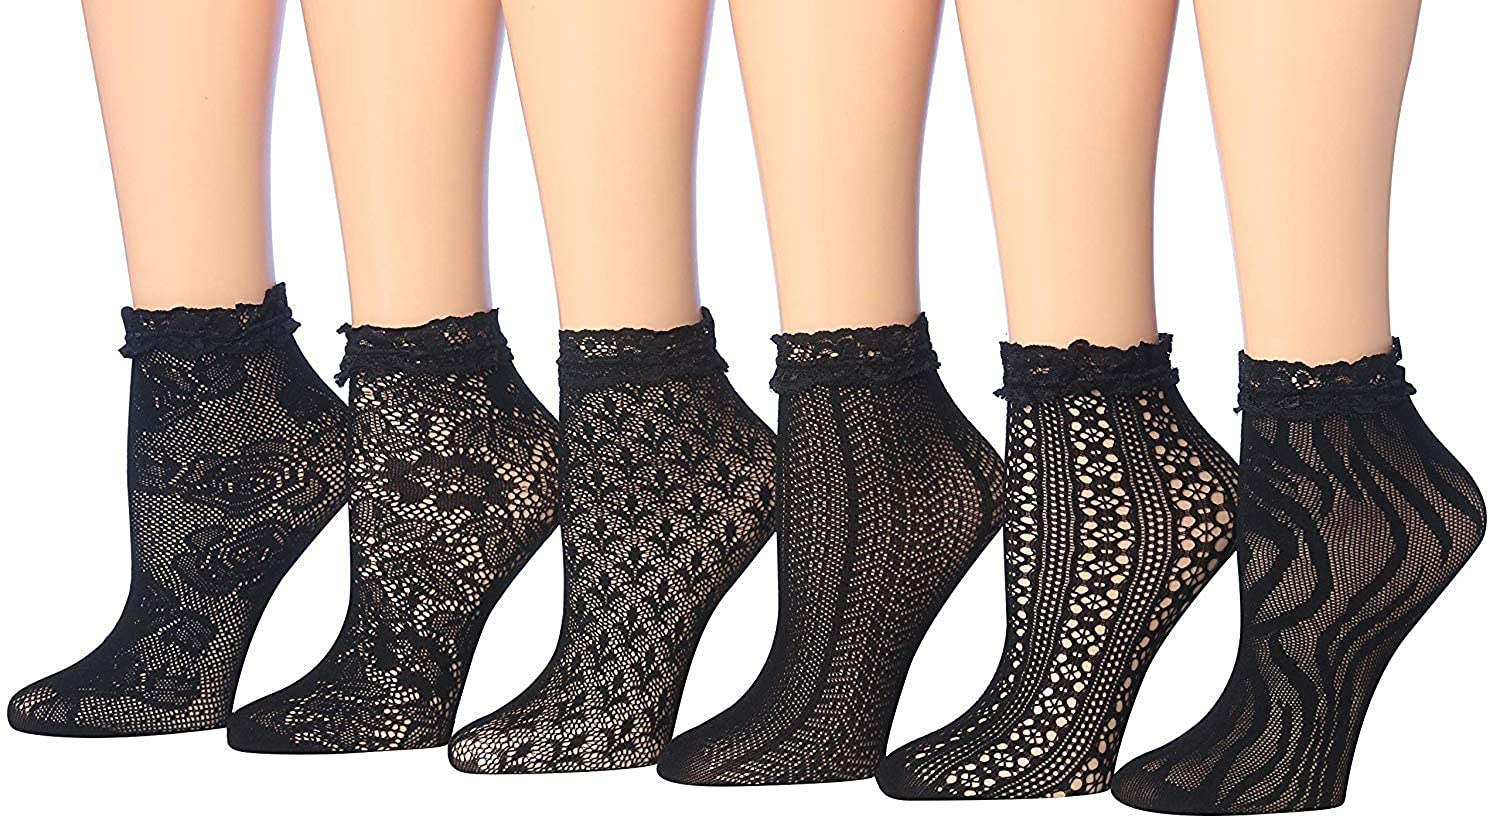 c59b7eef3 Isadora Paccini Women s Designed Lace Anklet Socks With Trimmed Ruffle  (LA01-A-6) at Amazon Women s Clothing store